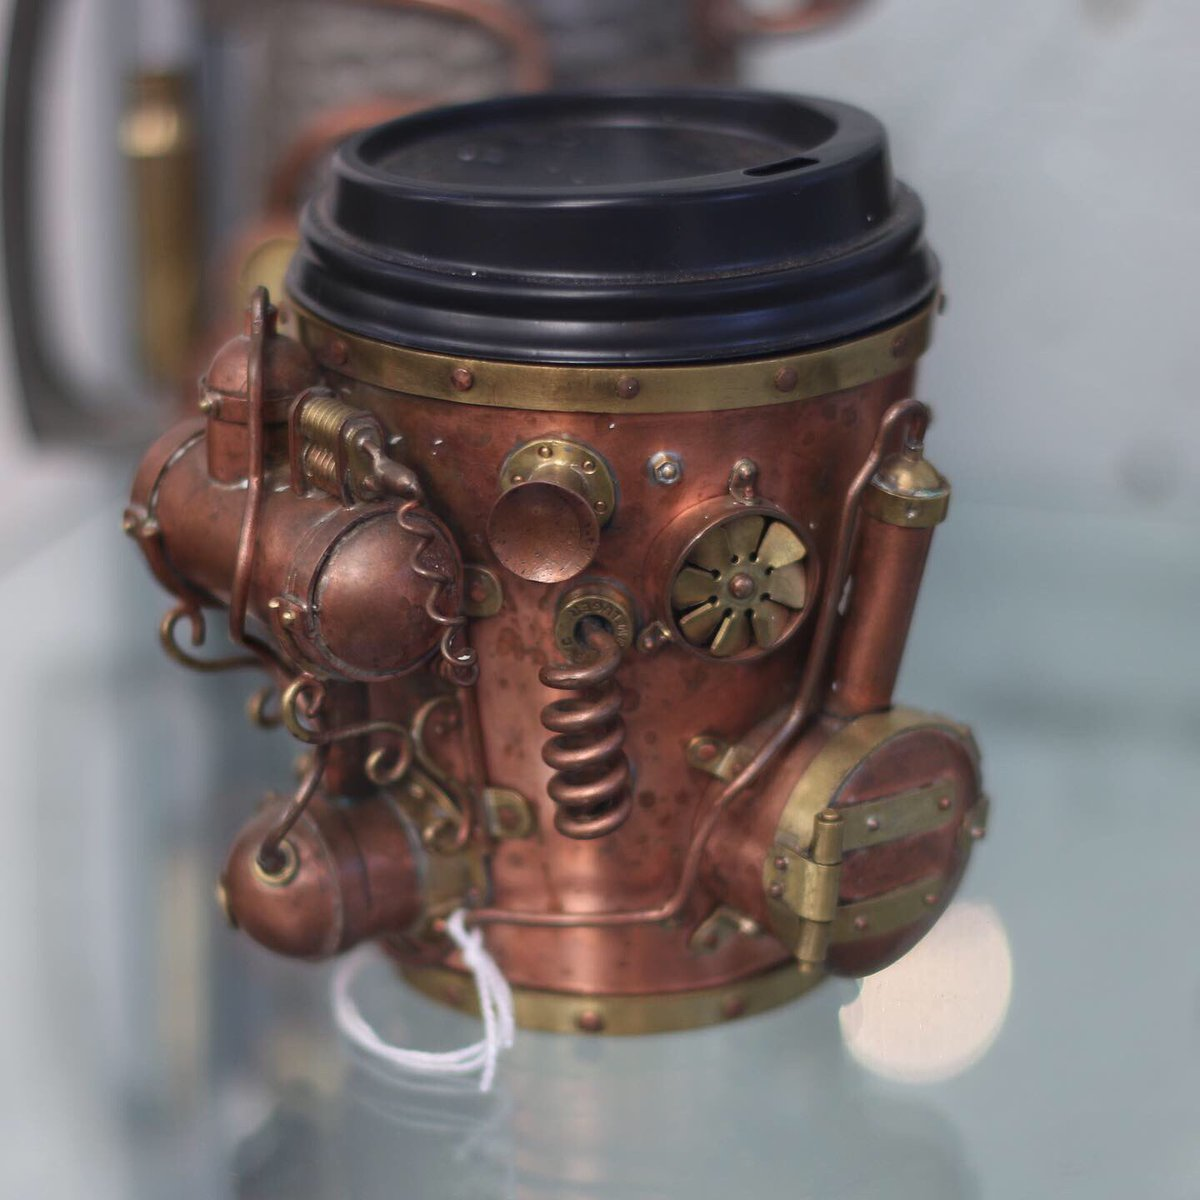 Steampunk coffee cup... created by Iain Clark of Oamaru, New Zealand  #steampunk #coffee #oamaru